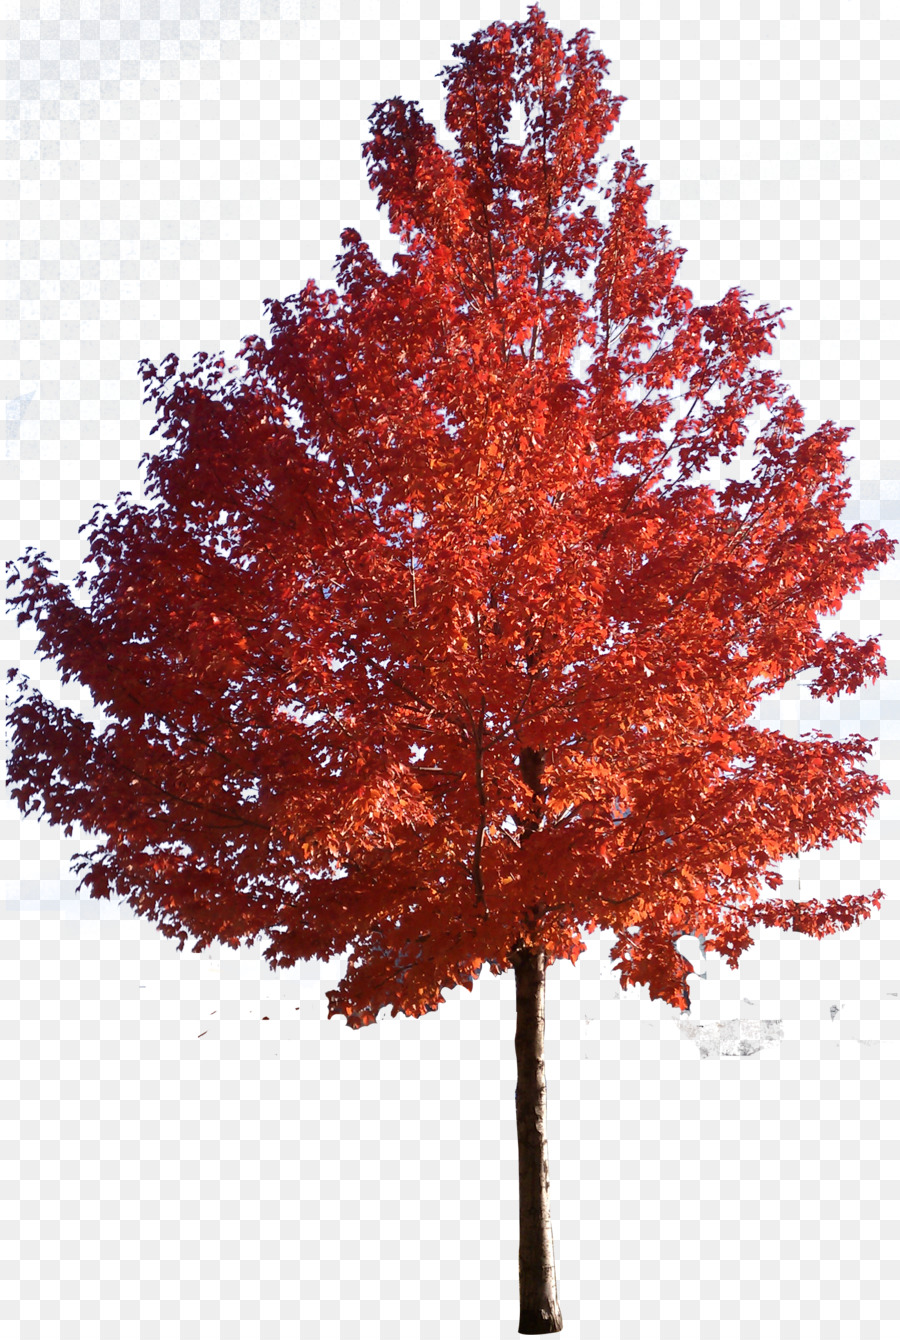 Japanese maple tree clipart jpg library Red Maple Tree png download - 1878*2785 - Free Transparent Red Maple ... jpg library